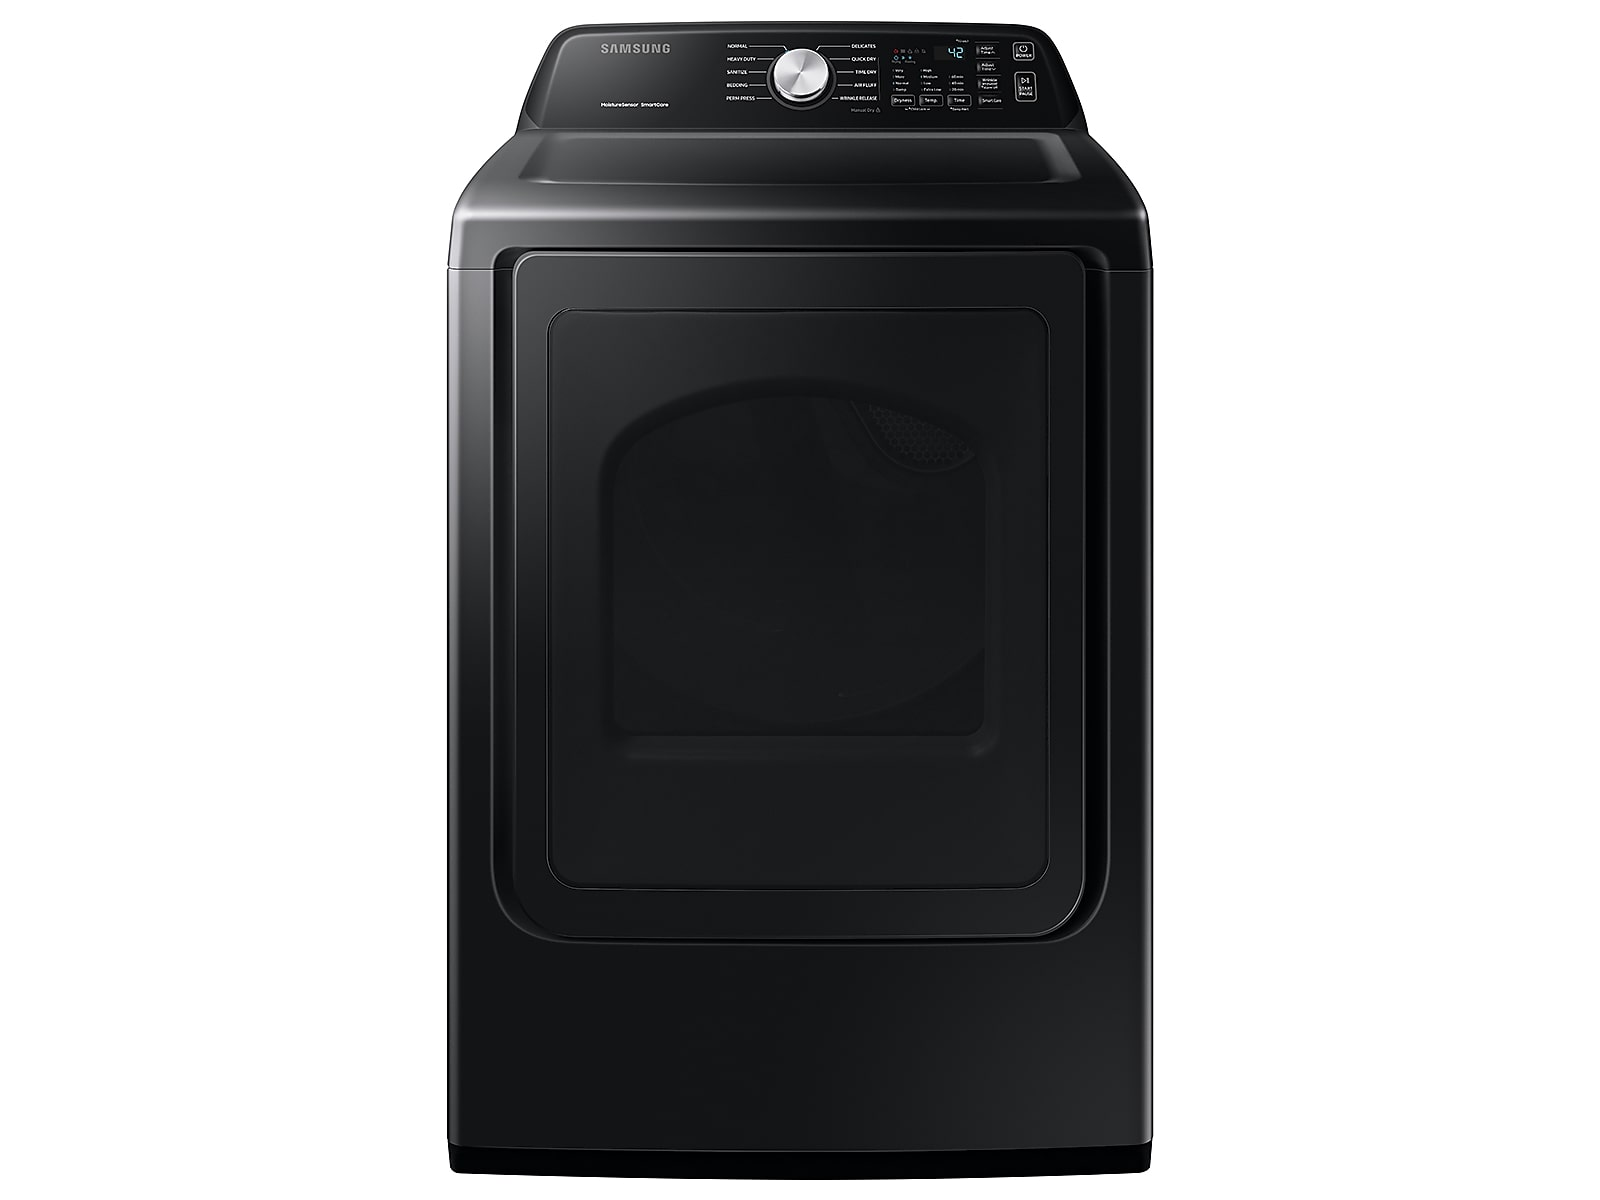 Samsung coupon: Samsung 7.4 cu. ft. Electric Dryer with Sensor Dry in Brushed Black(DVE45T3400V/A3)